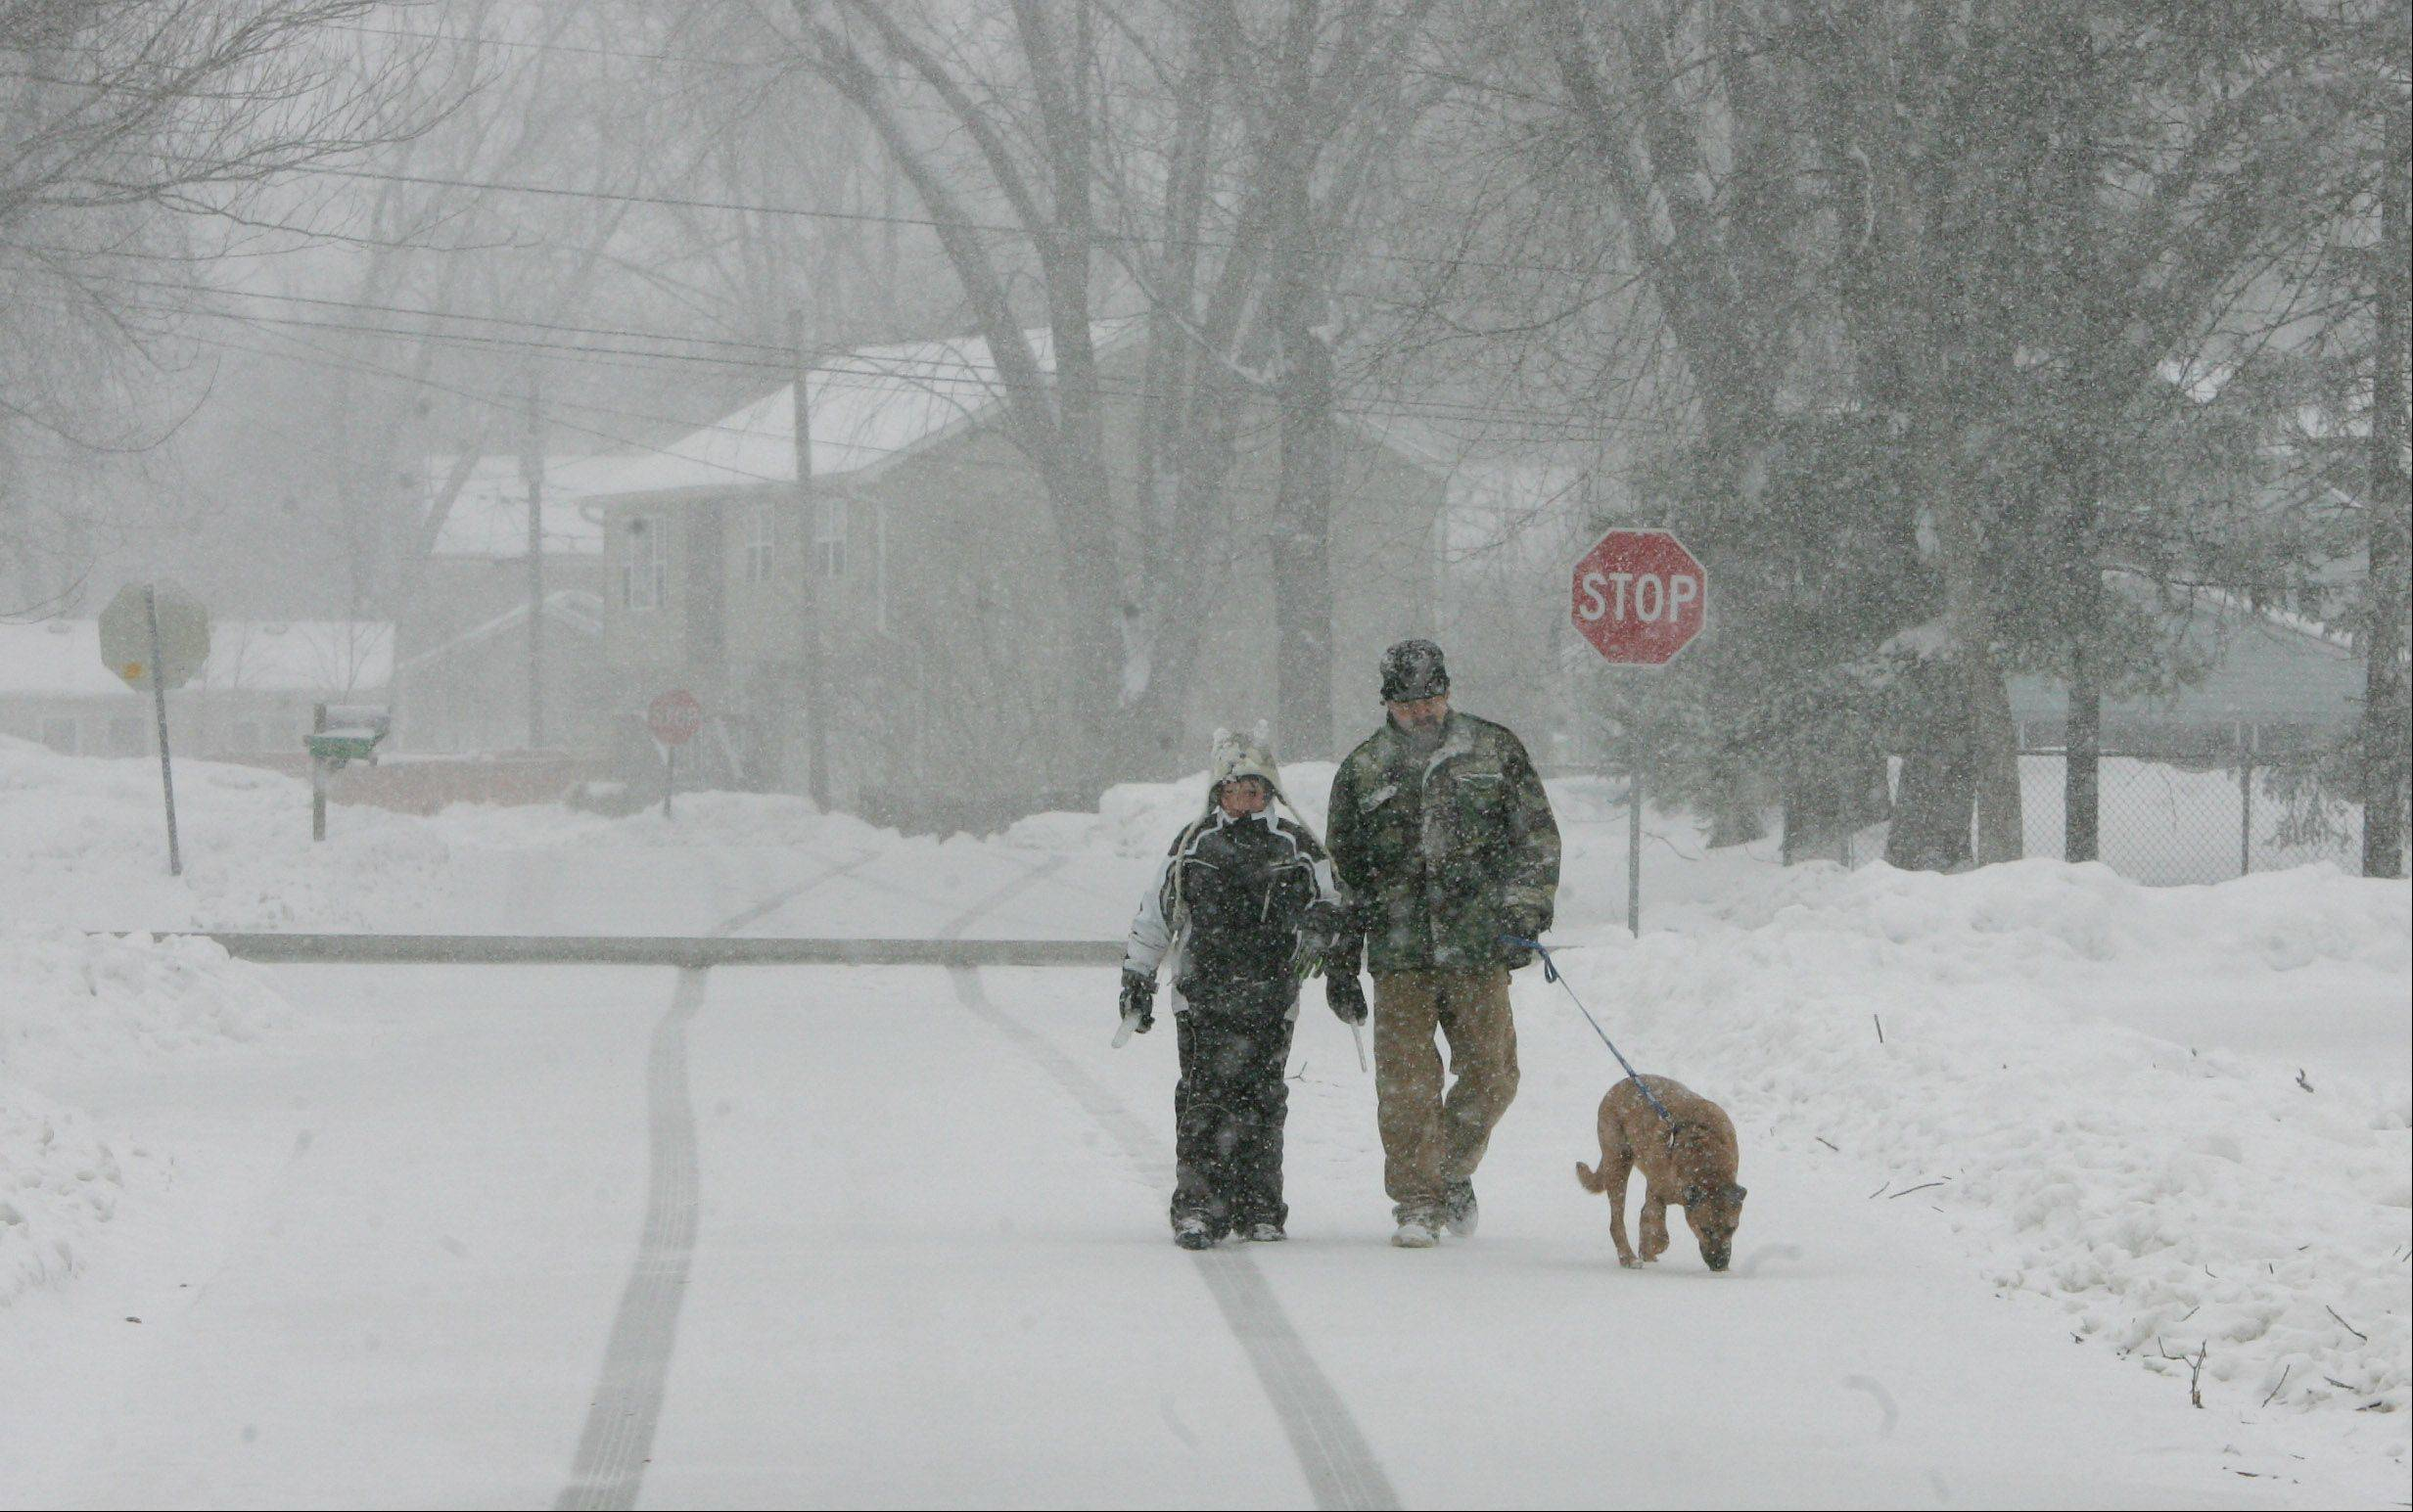 Henry Arimas, of Lake Villa, and his son, Henry Jr., walk with their dog, Amarillo, as snow falls Tuesday in Lake County. The winter storm caused schools and some businesses to close for the day.